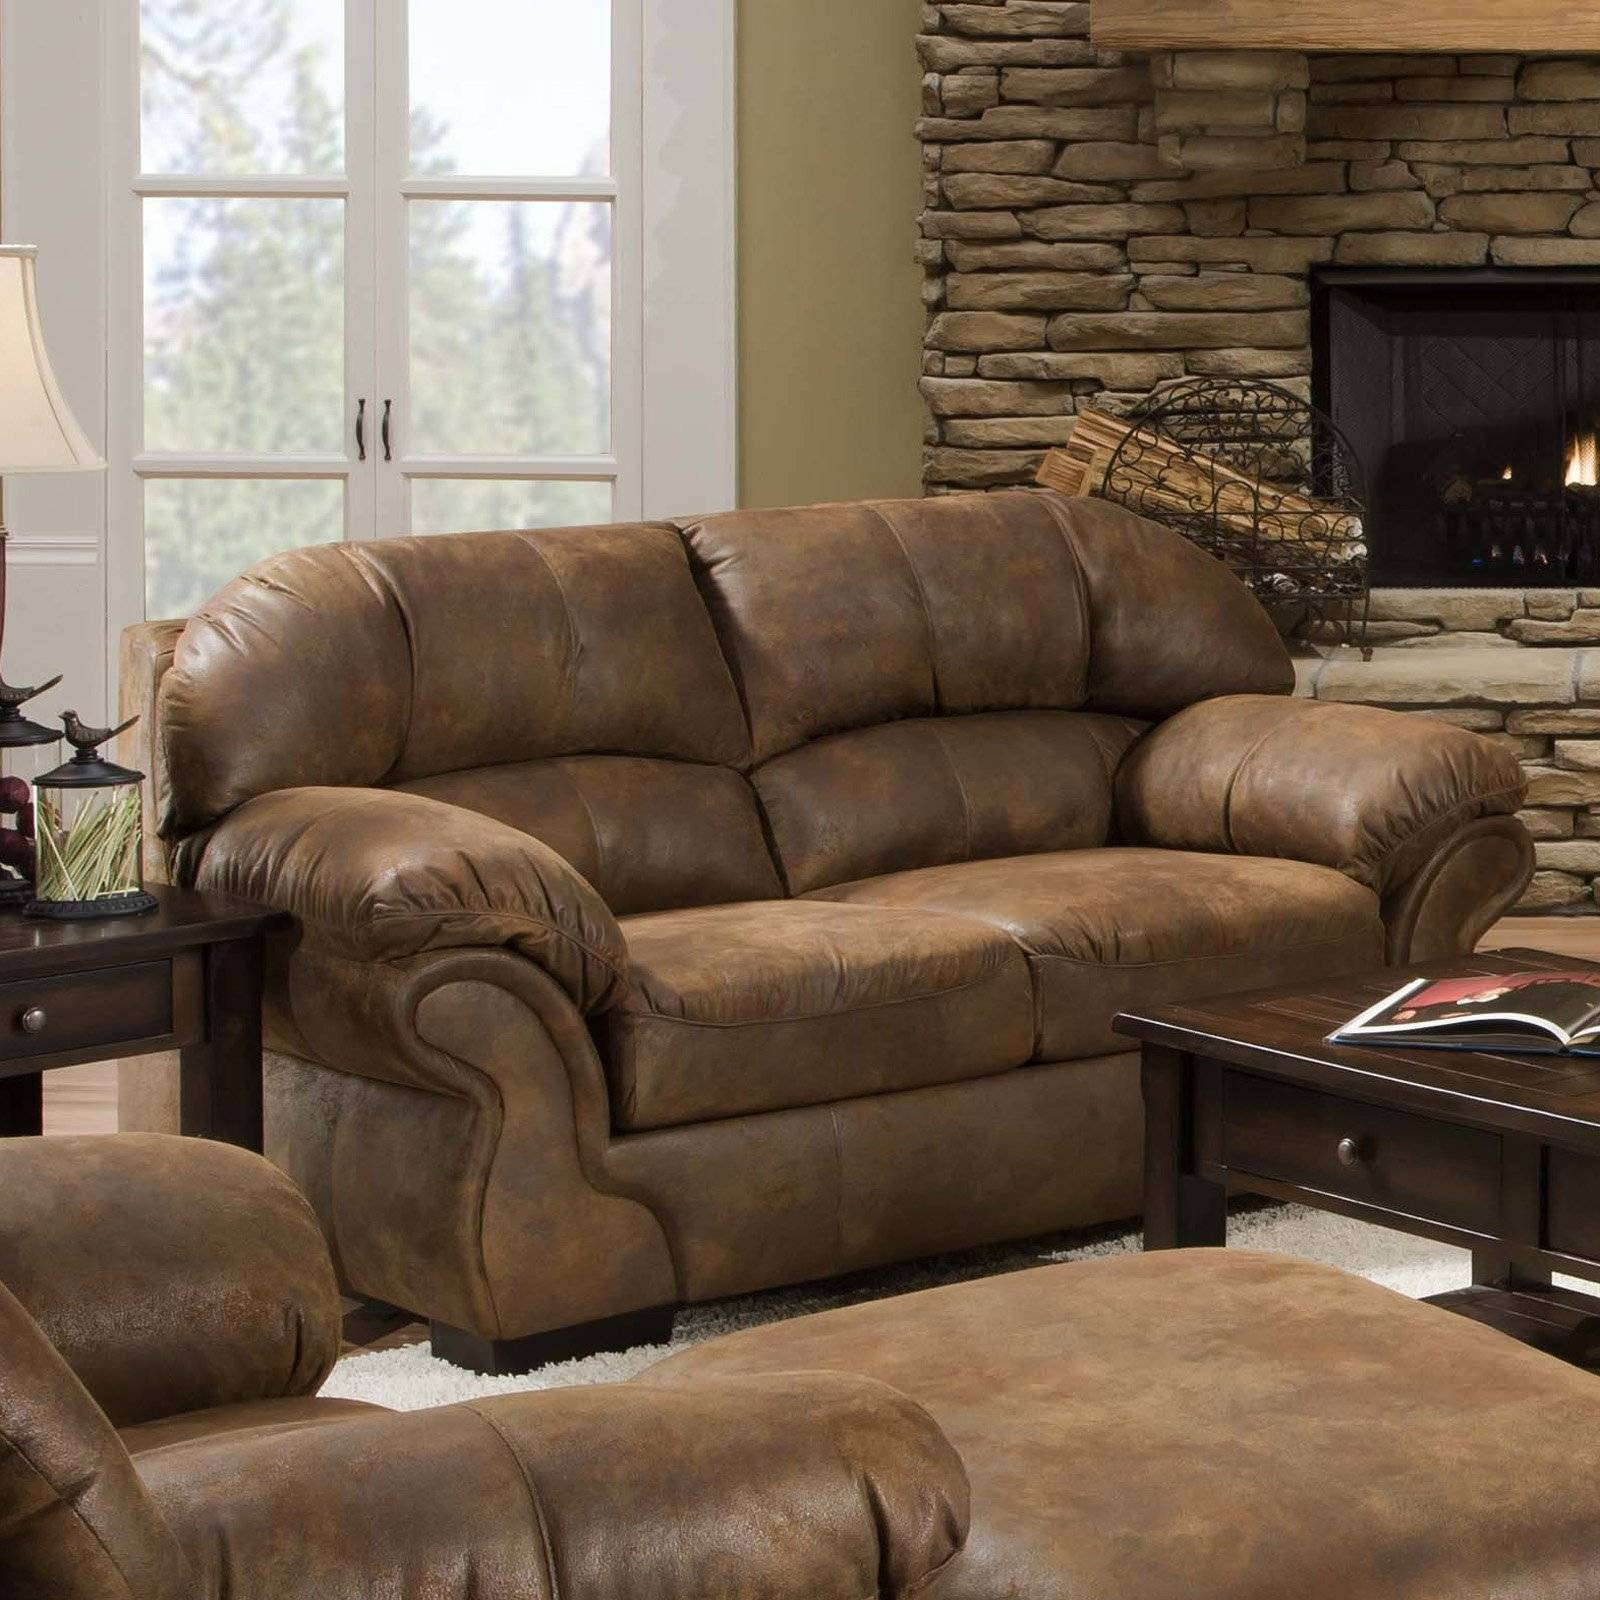 Simmons Pinto Tobacco Leather Loveseat | Hayneedle Throughout Simmons Leather Sofas And Loveseats (View 10 of 15)